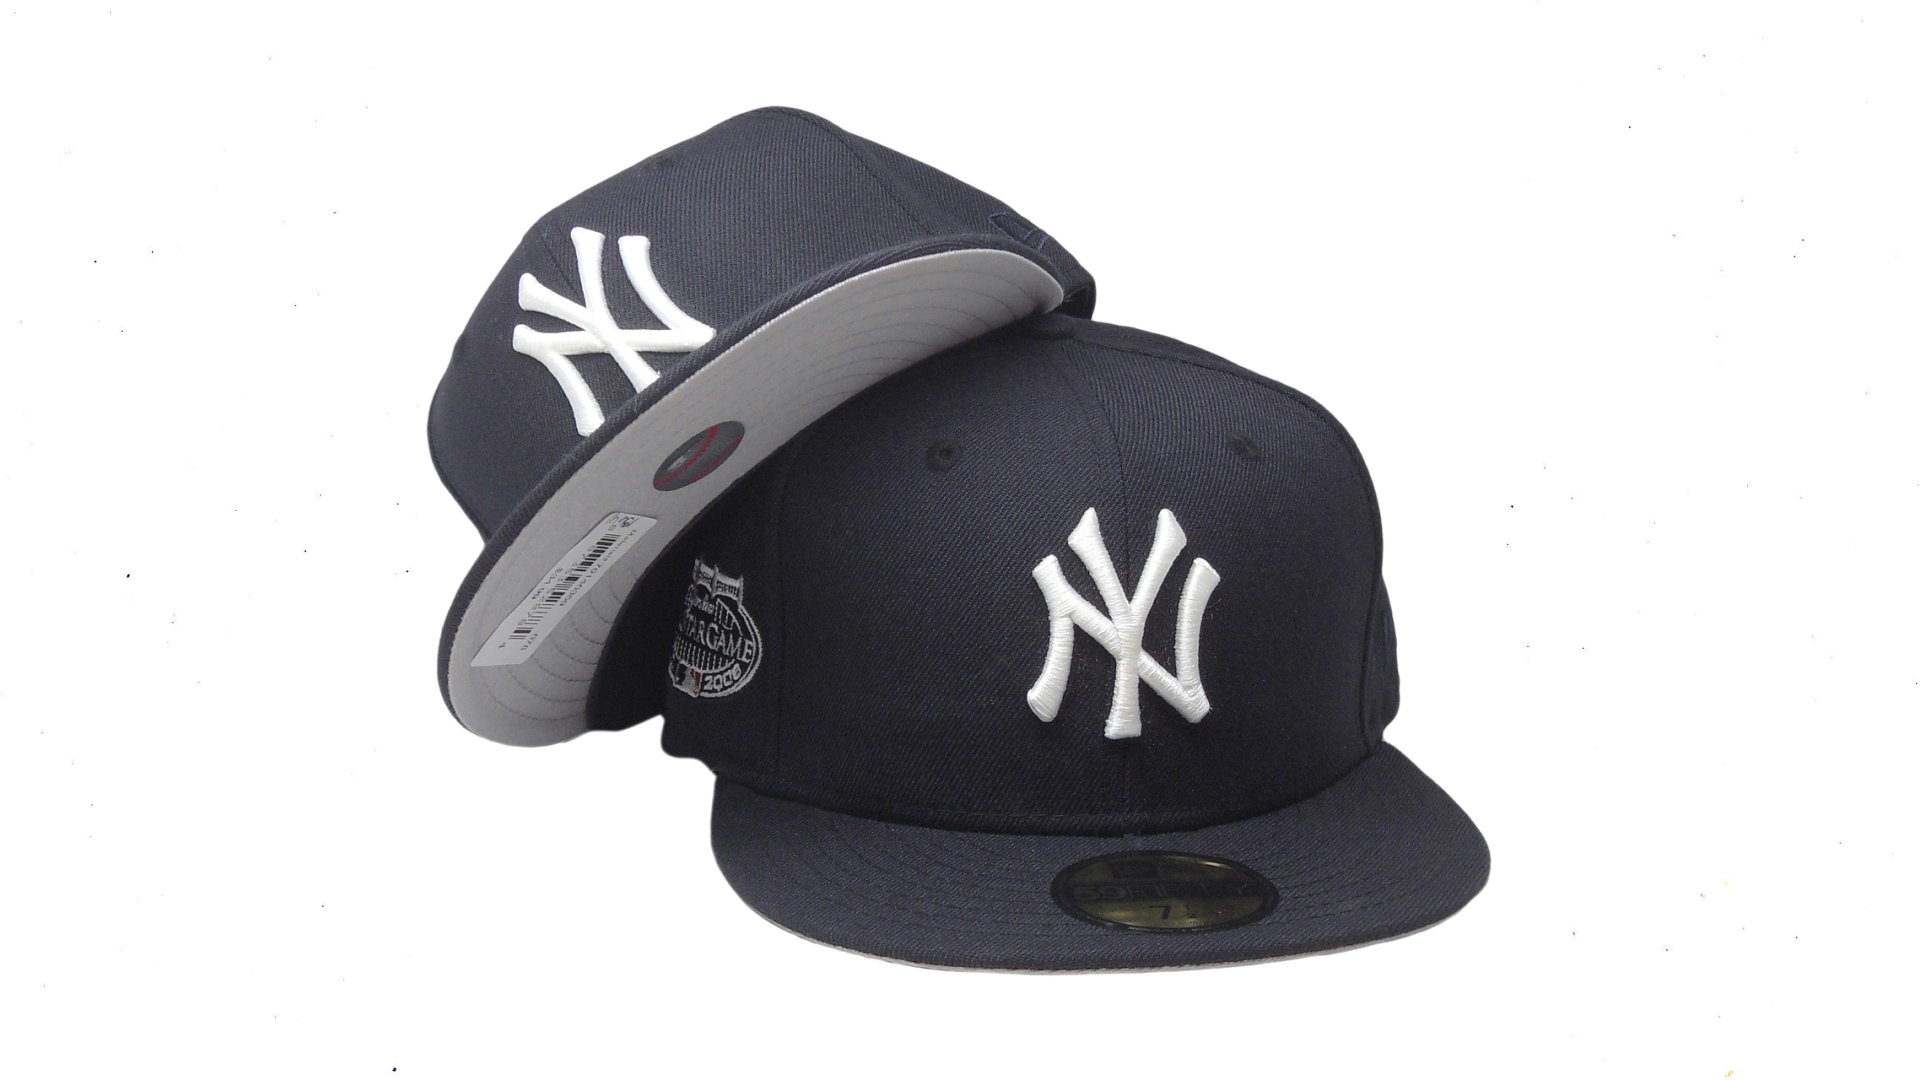 b99f7e91f83401 If you ever stepped into the most dangerous parts of South LA, you likely  saw members of the Neighborhood Crips gang sporting a New York Yankees hat.